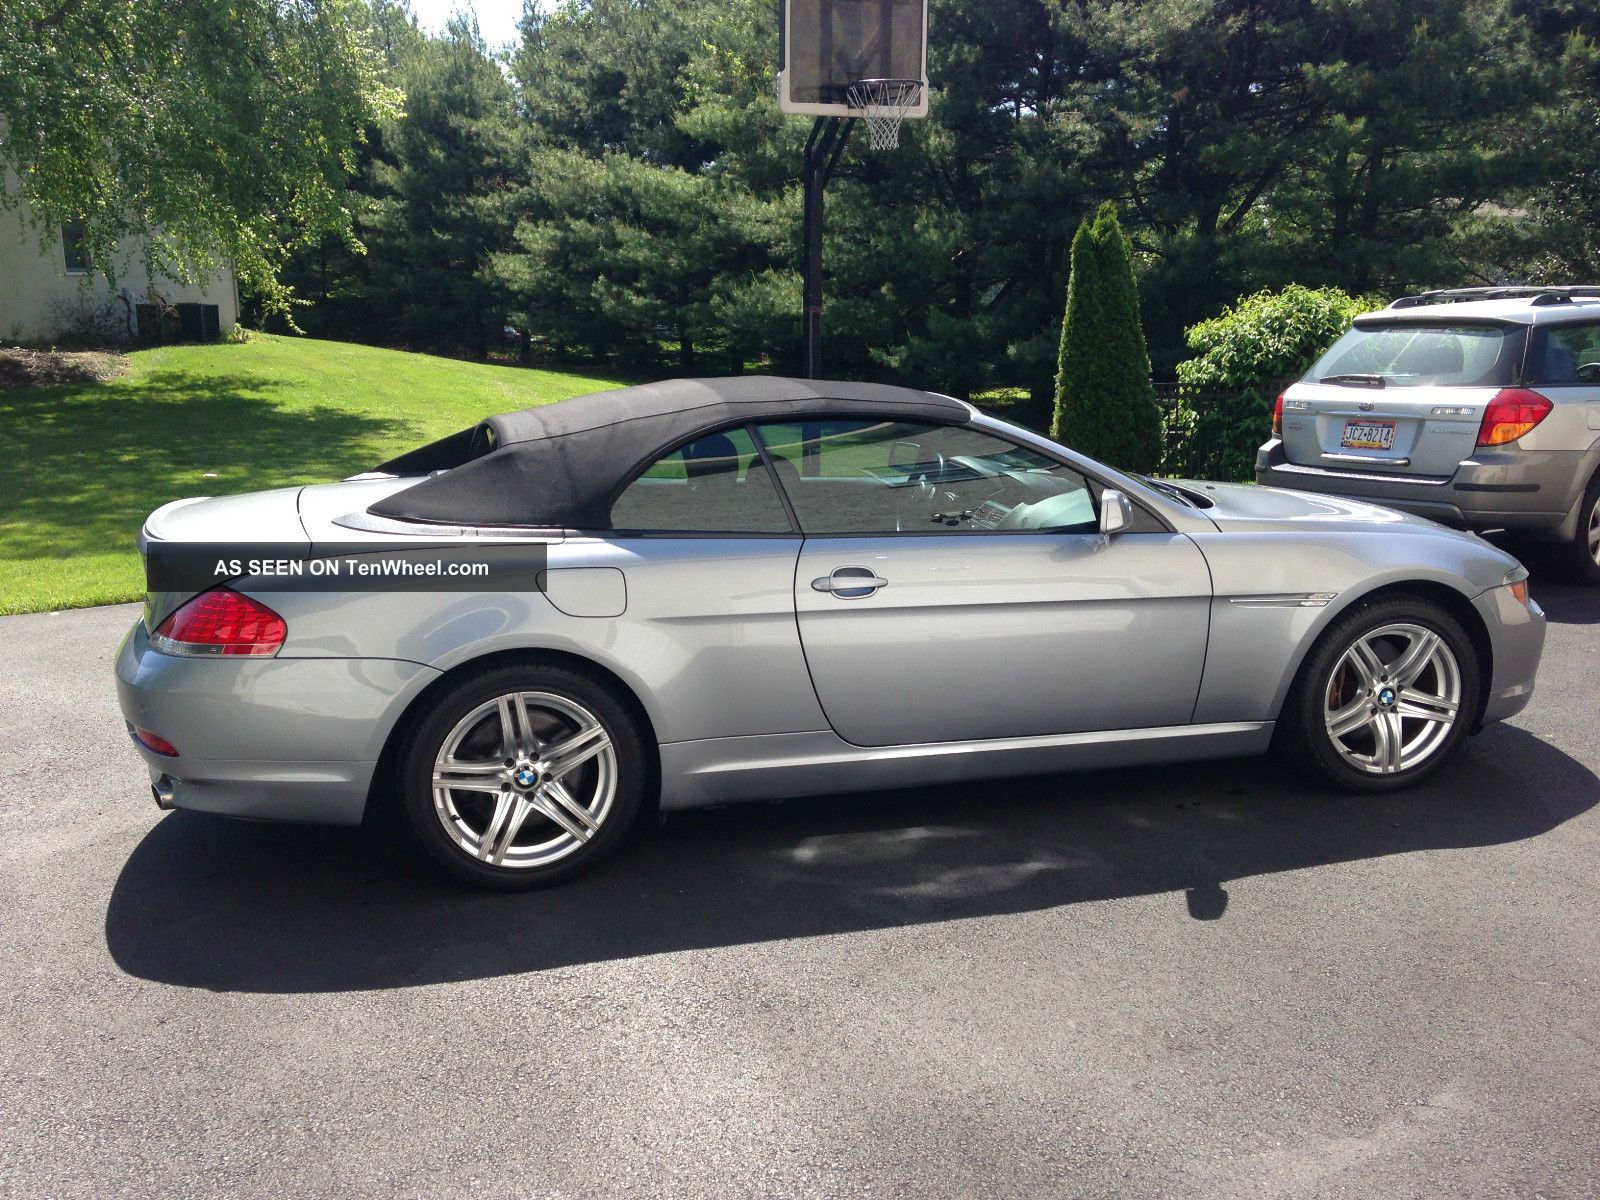 2006 bmw 650i convertible 2 door 4 8l two keys manuals garage kept smoke. Black Bedroom Furniture Sets. Home Design Ideas